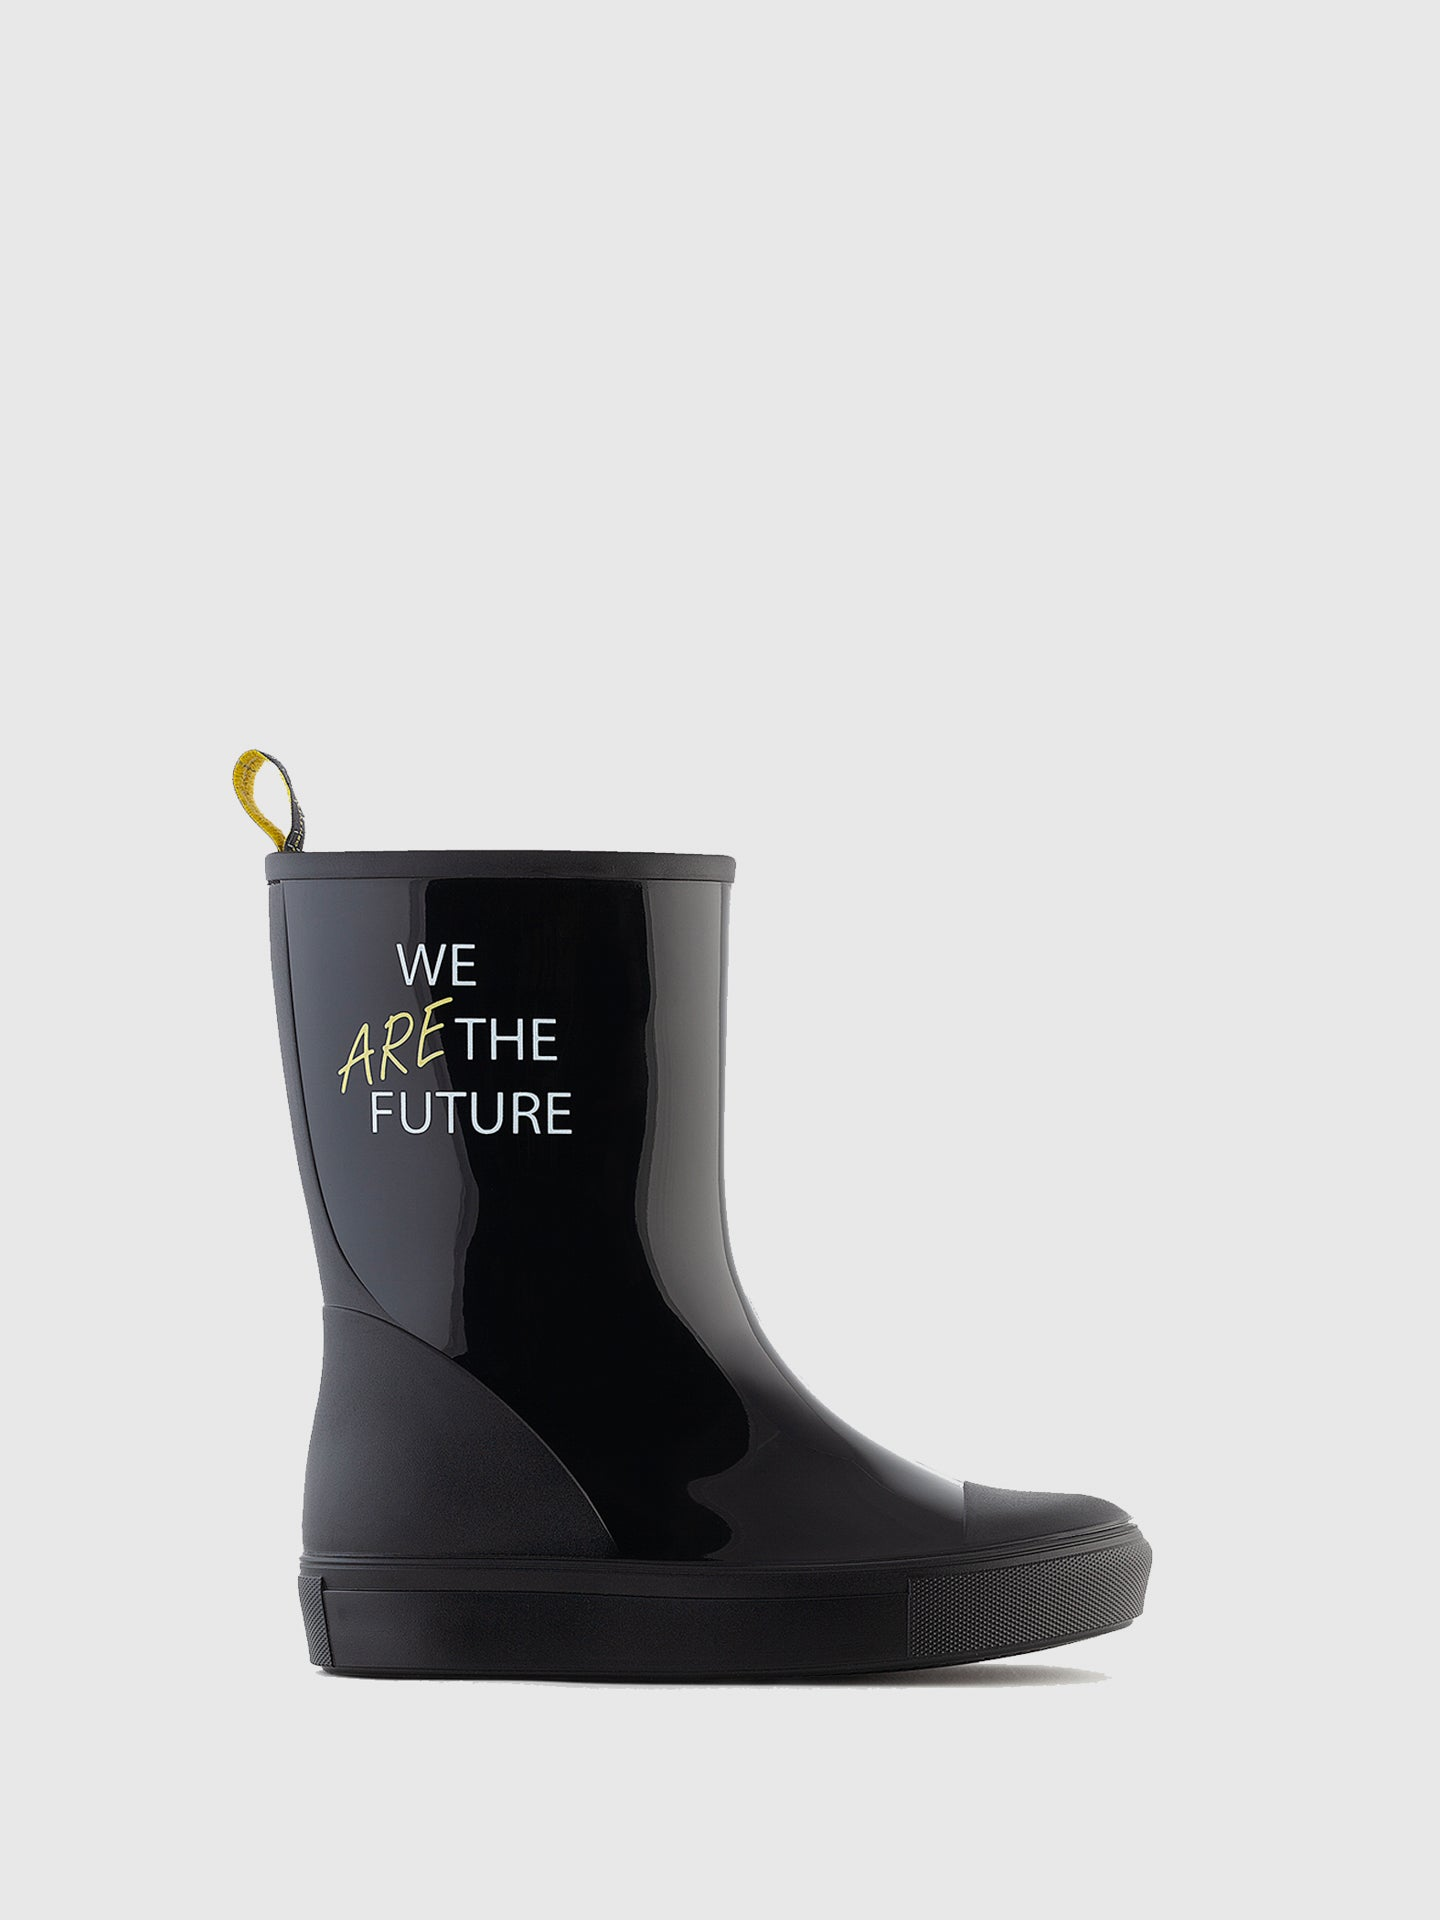 Lemon Jelly Black Round Toe Boots